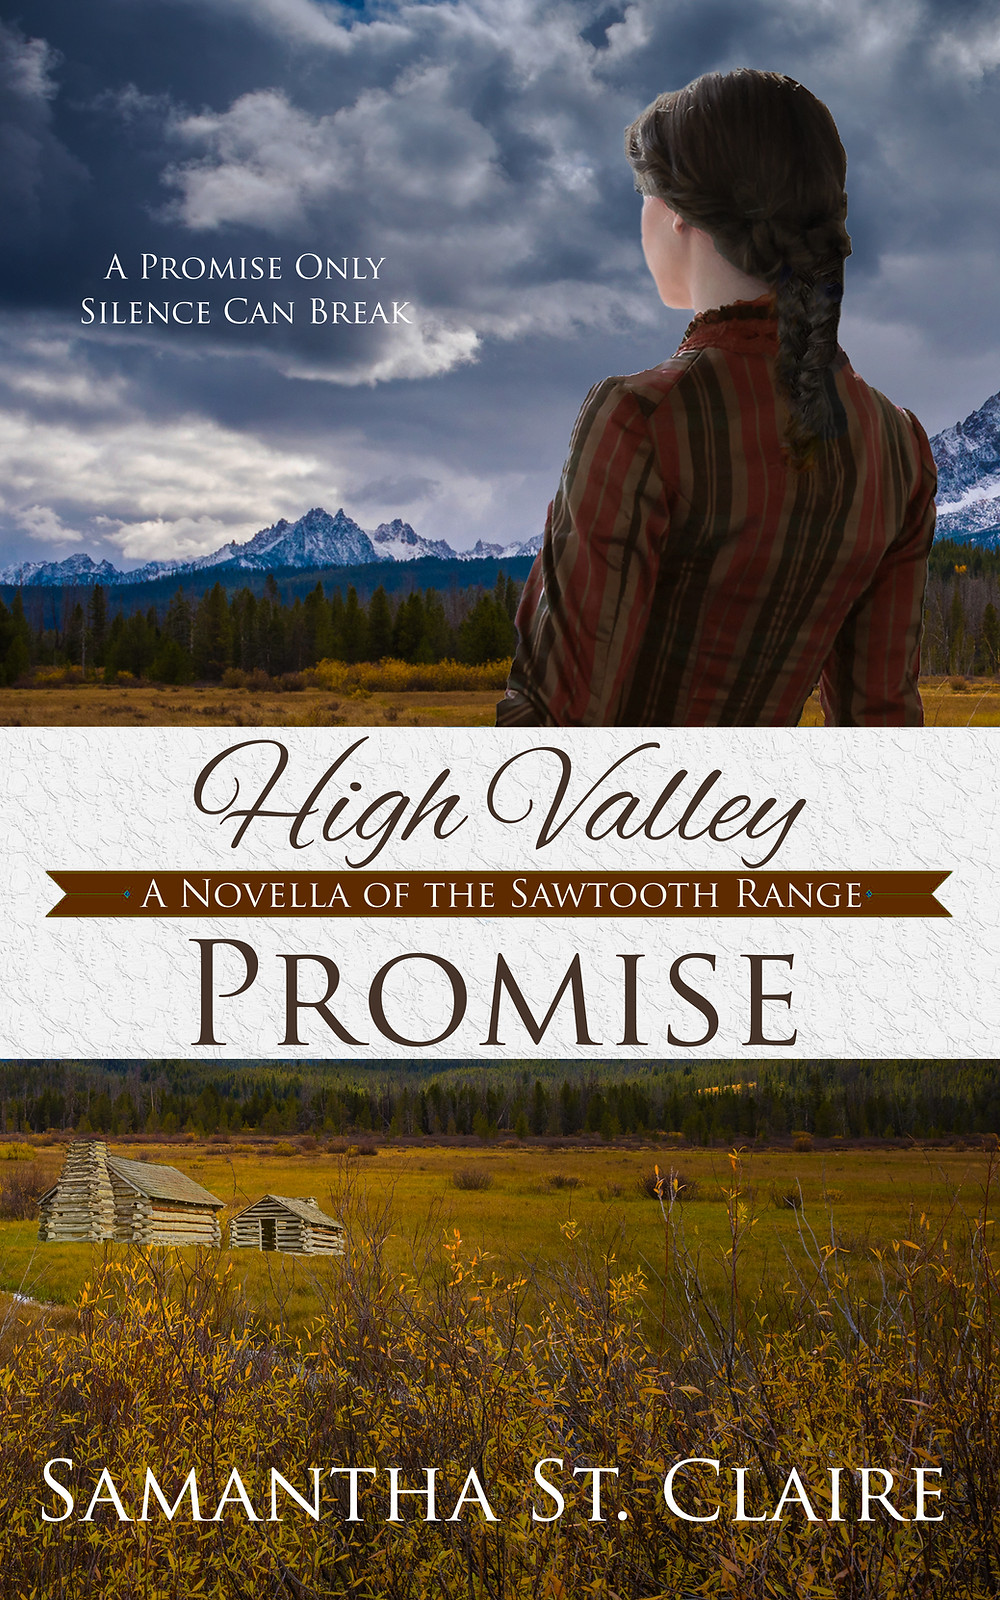 High Valley Promise by Samantha St. Claire